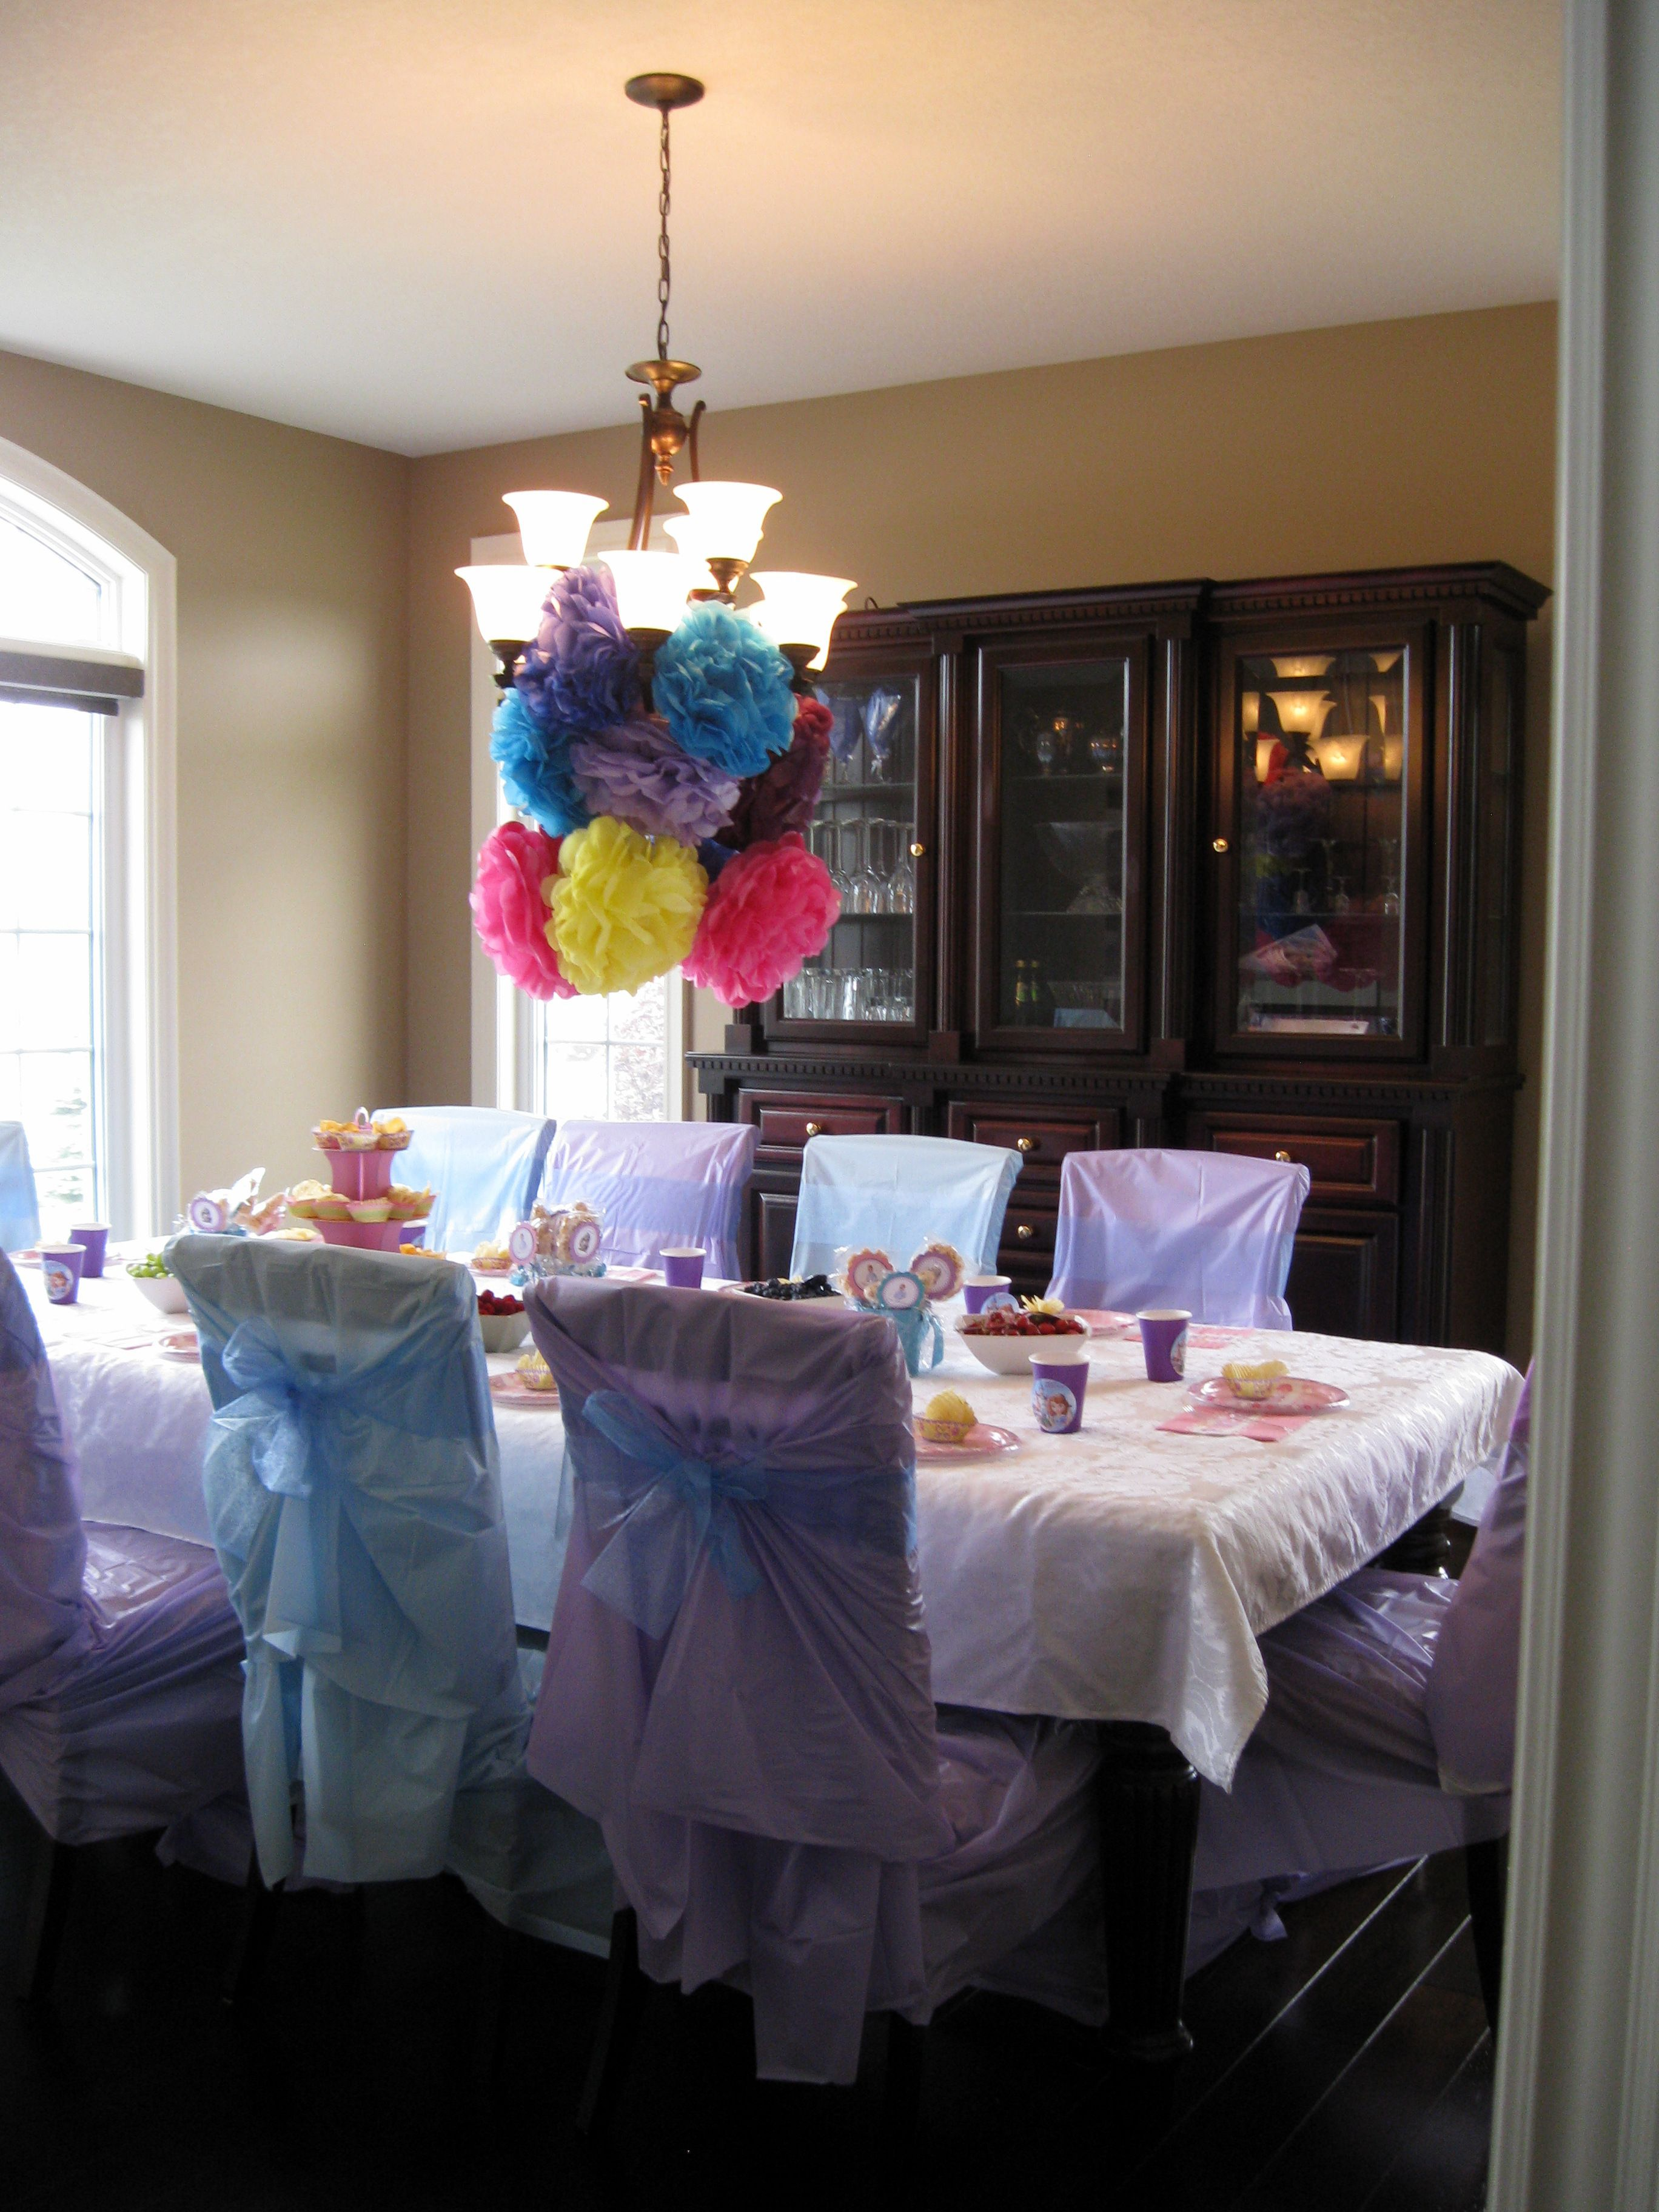 Sofia The First Birthay Party DIY Plastic Tablecloth Chair Covers With Bows!